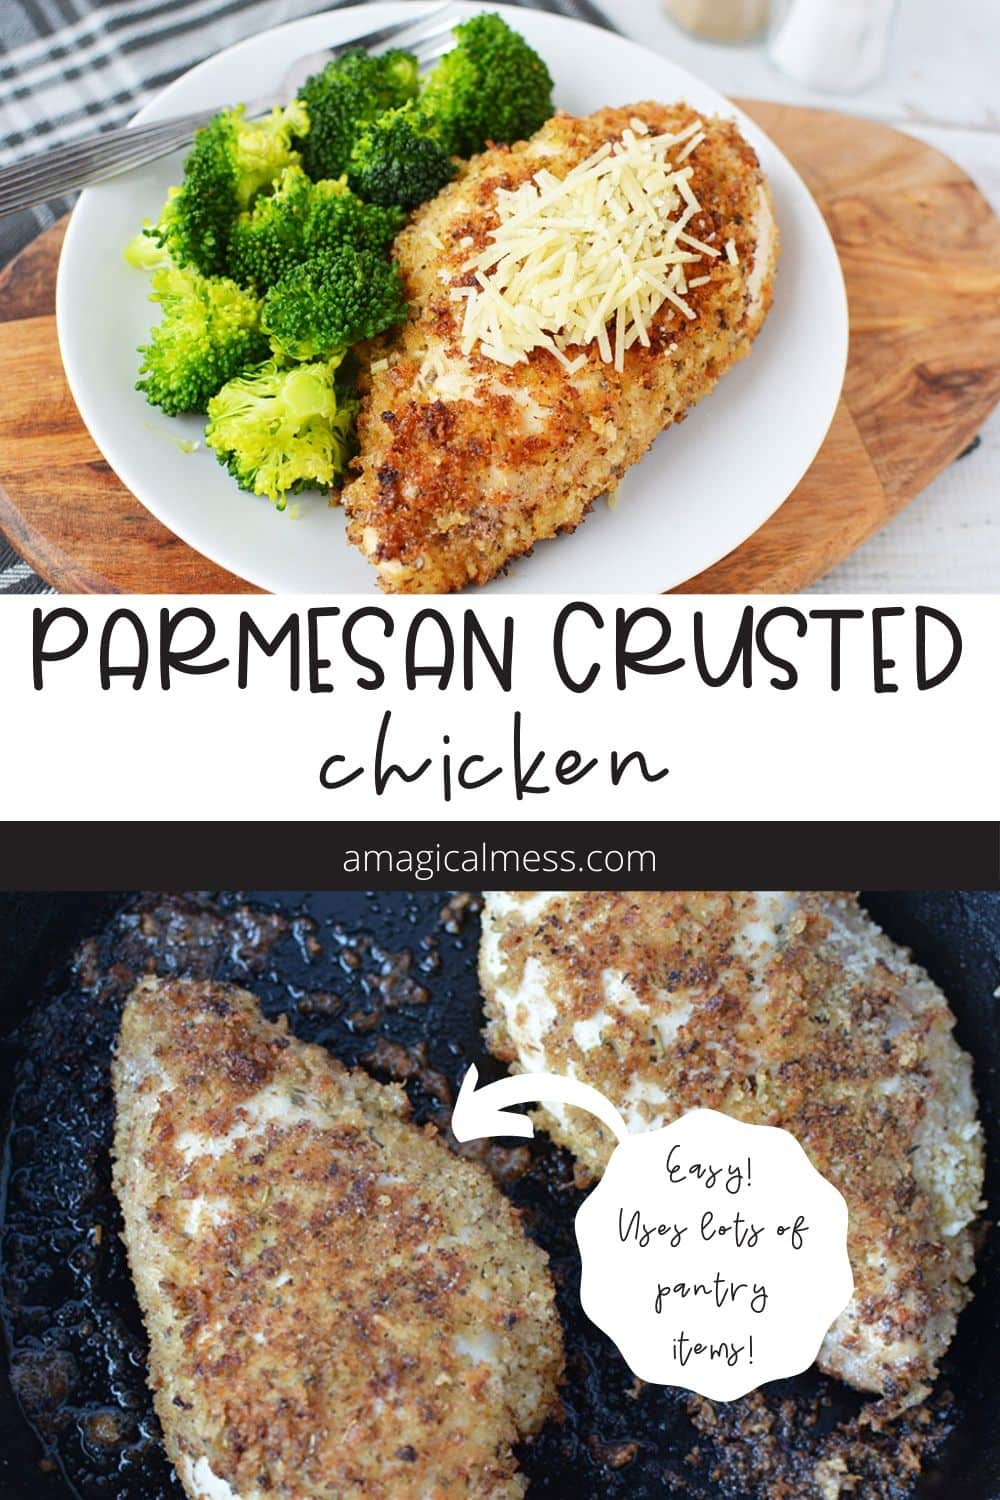 Parmesan crusted chicken on a dinner plate and in a pan